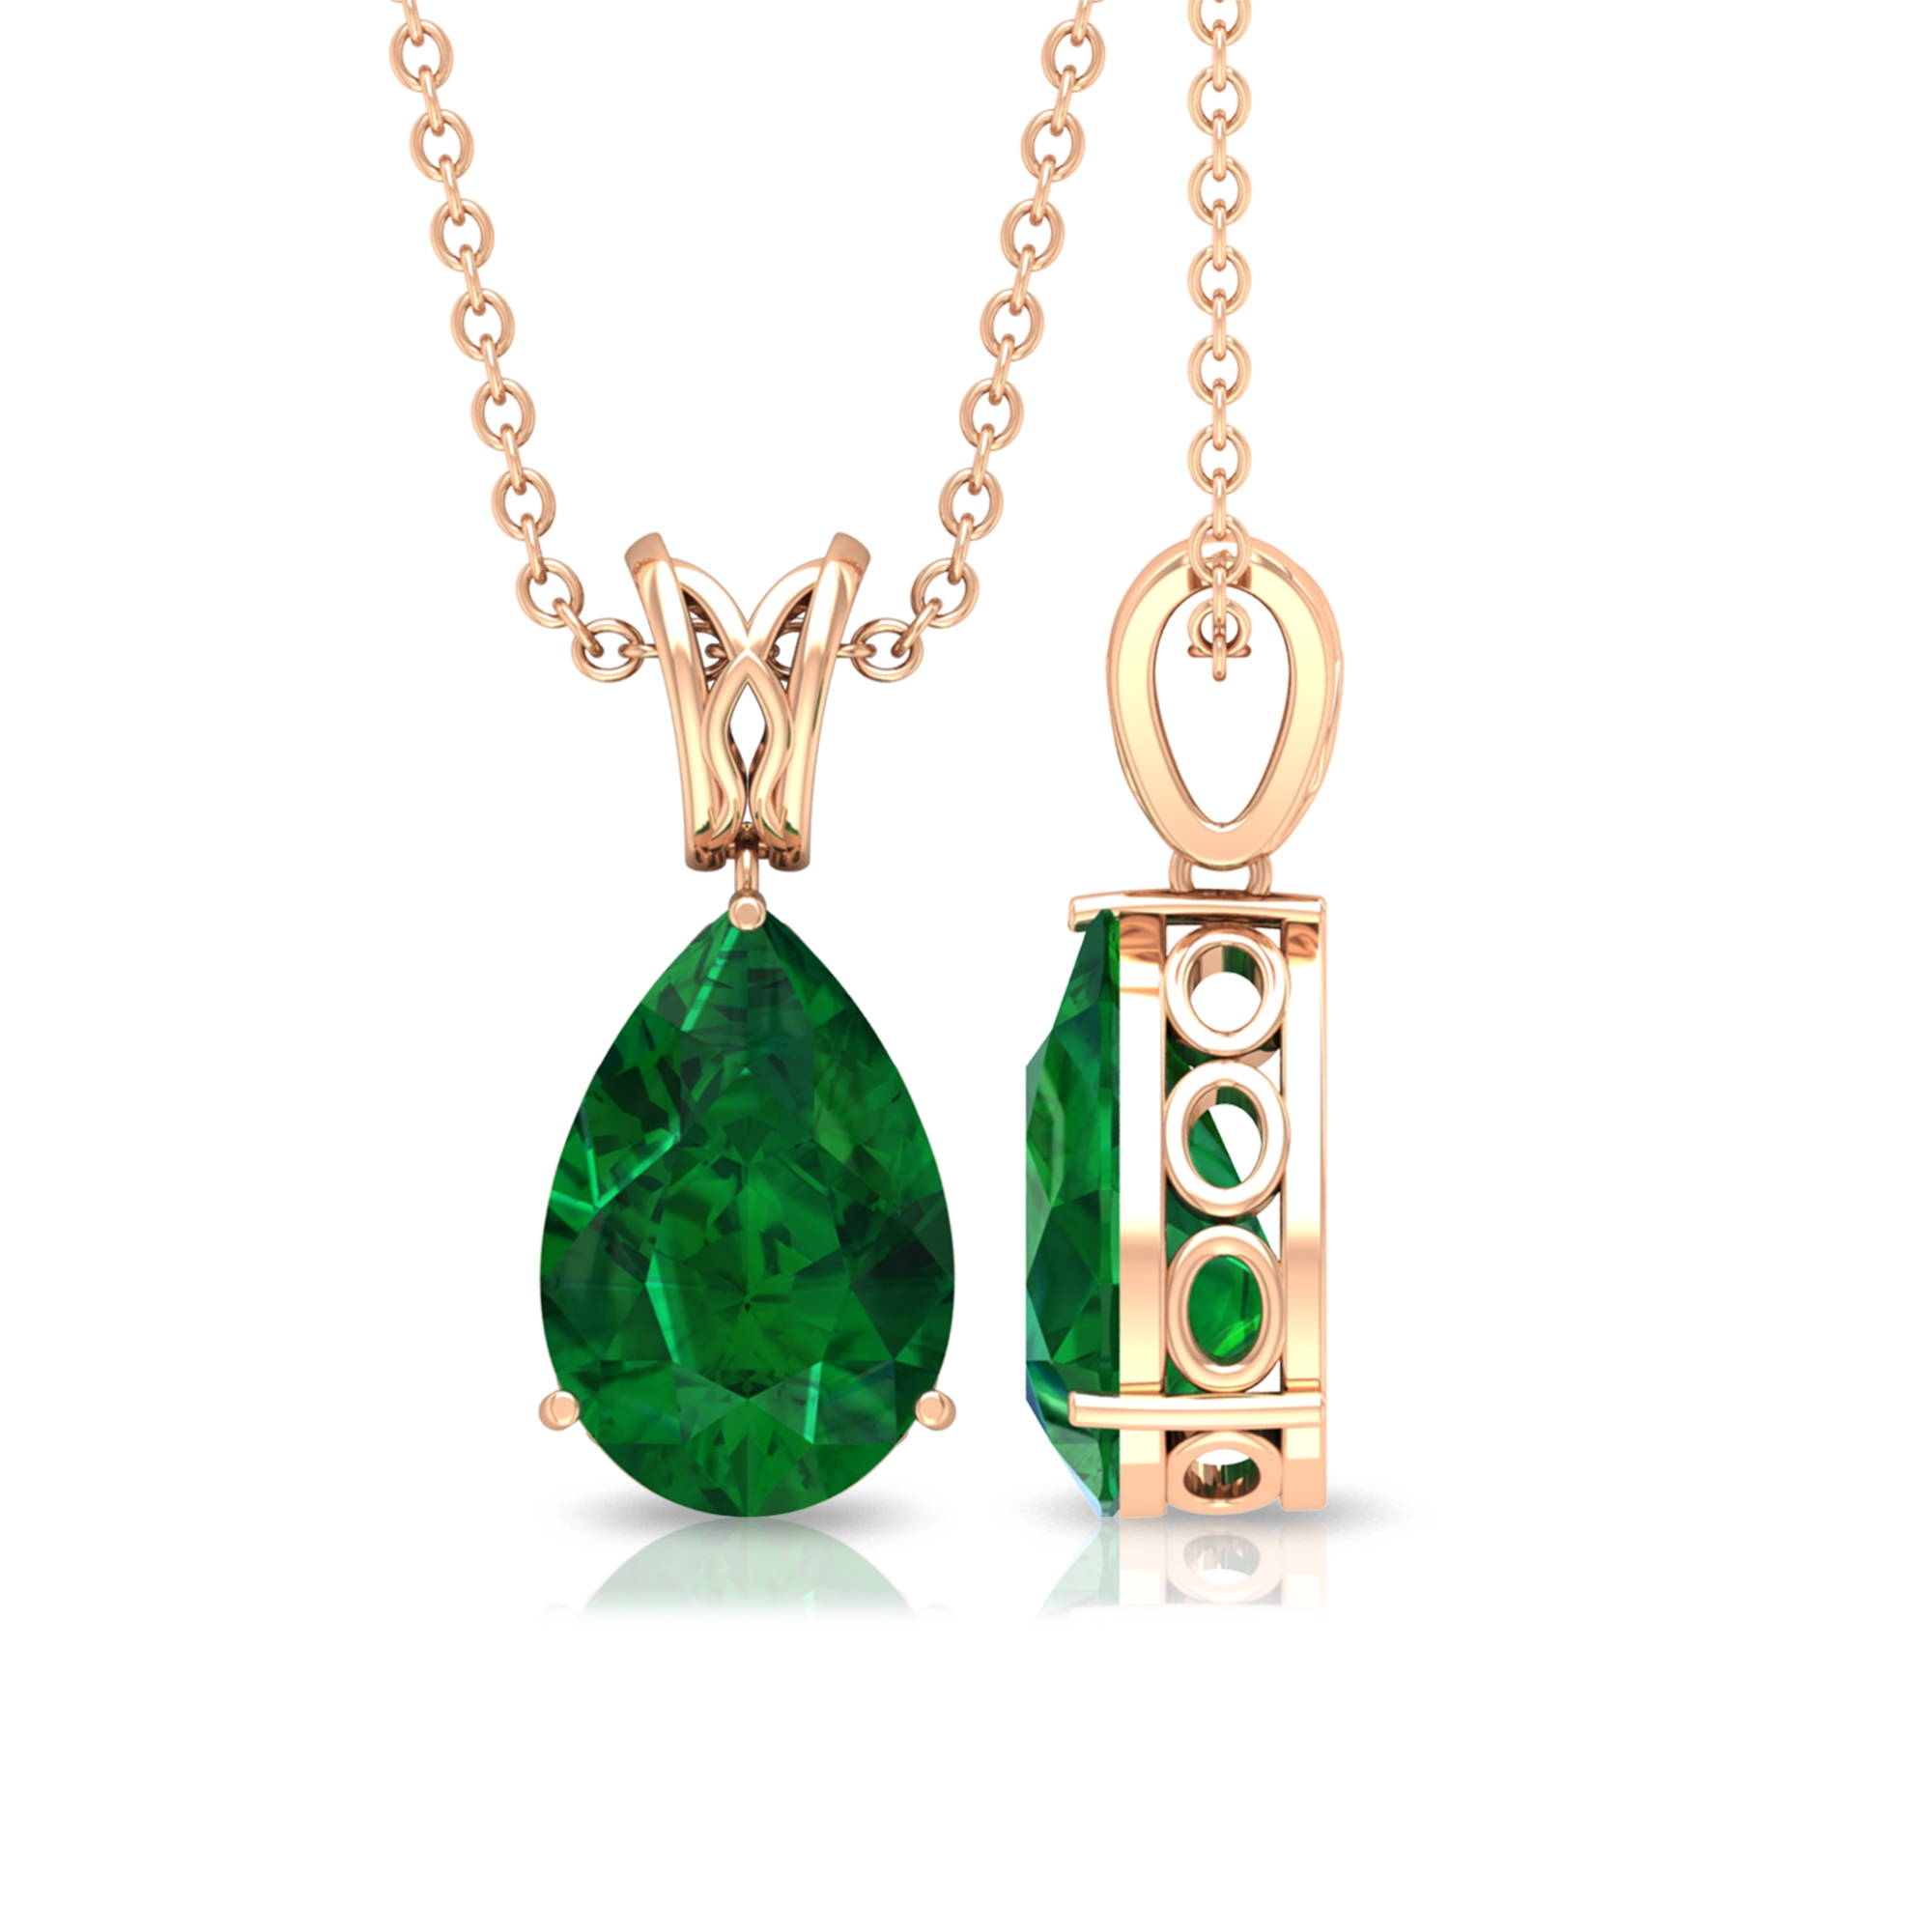 Three Prong Set 7X10 MM Pear Cut Emerald Solitaire Pendant with Decorative Bail